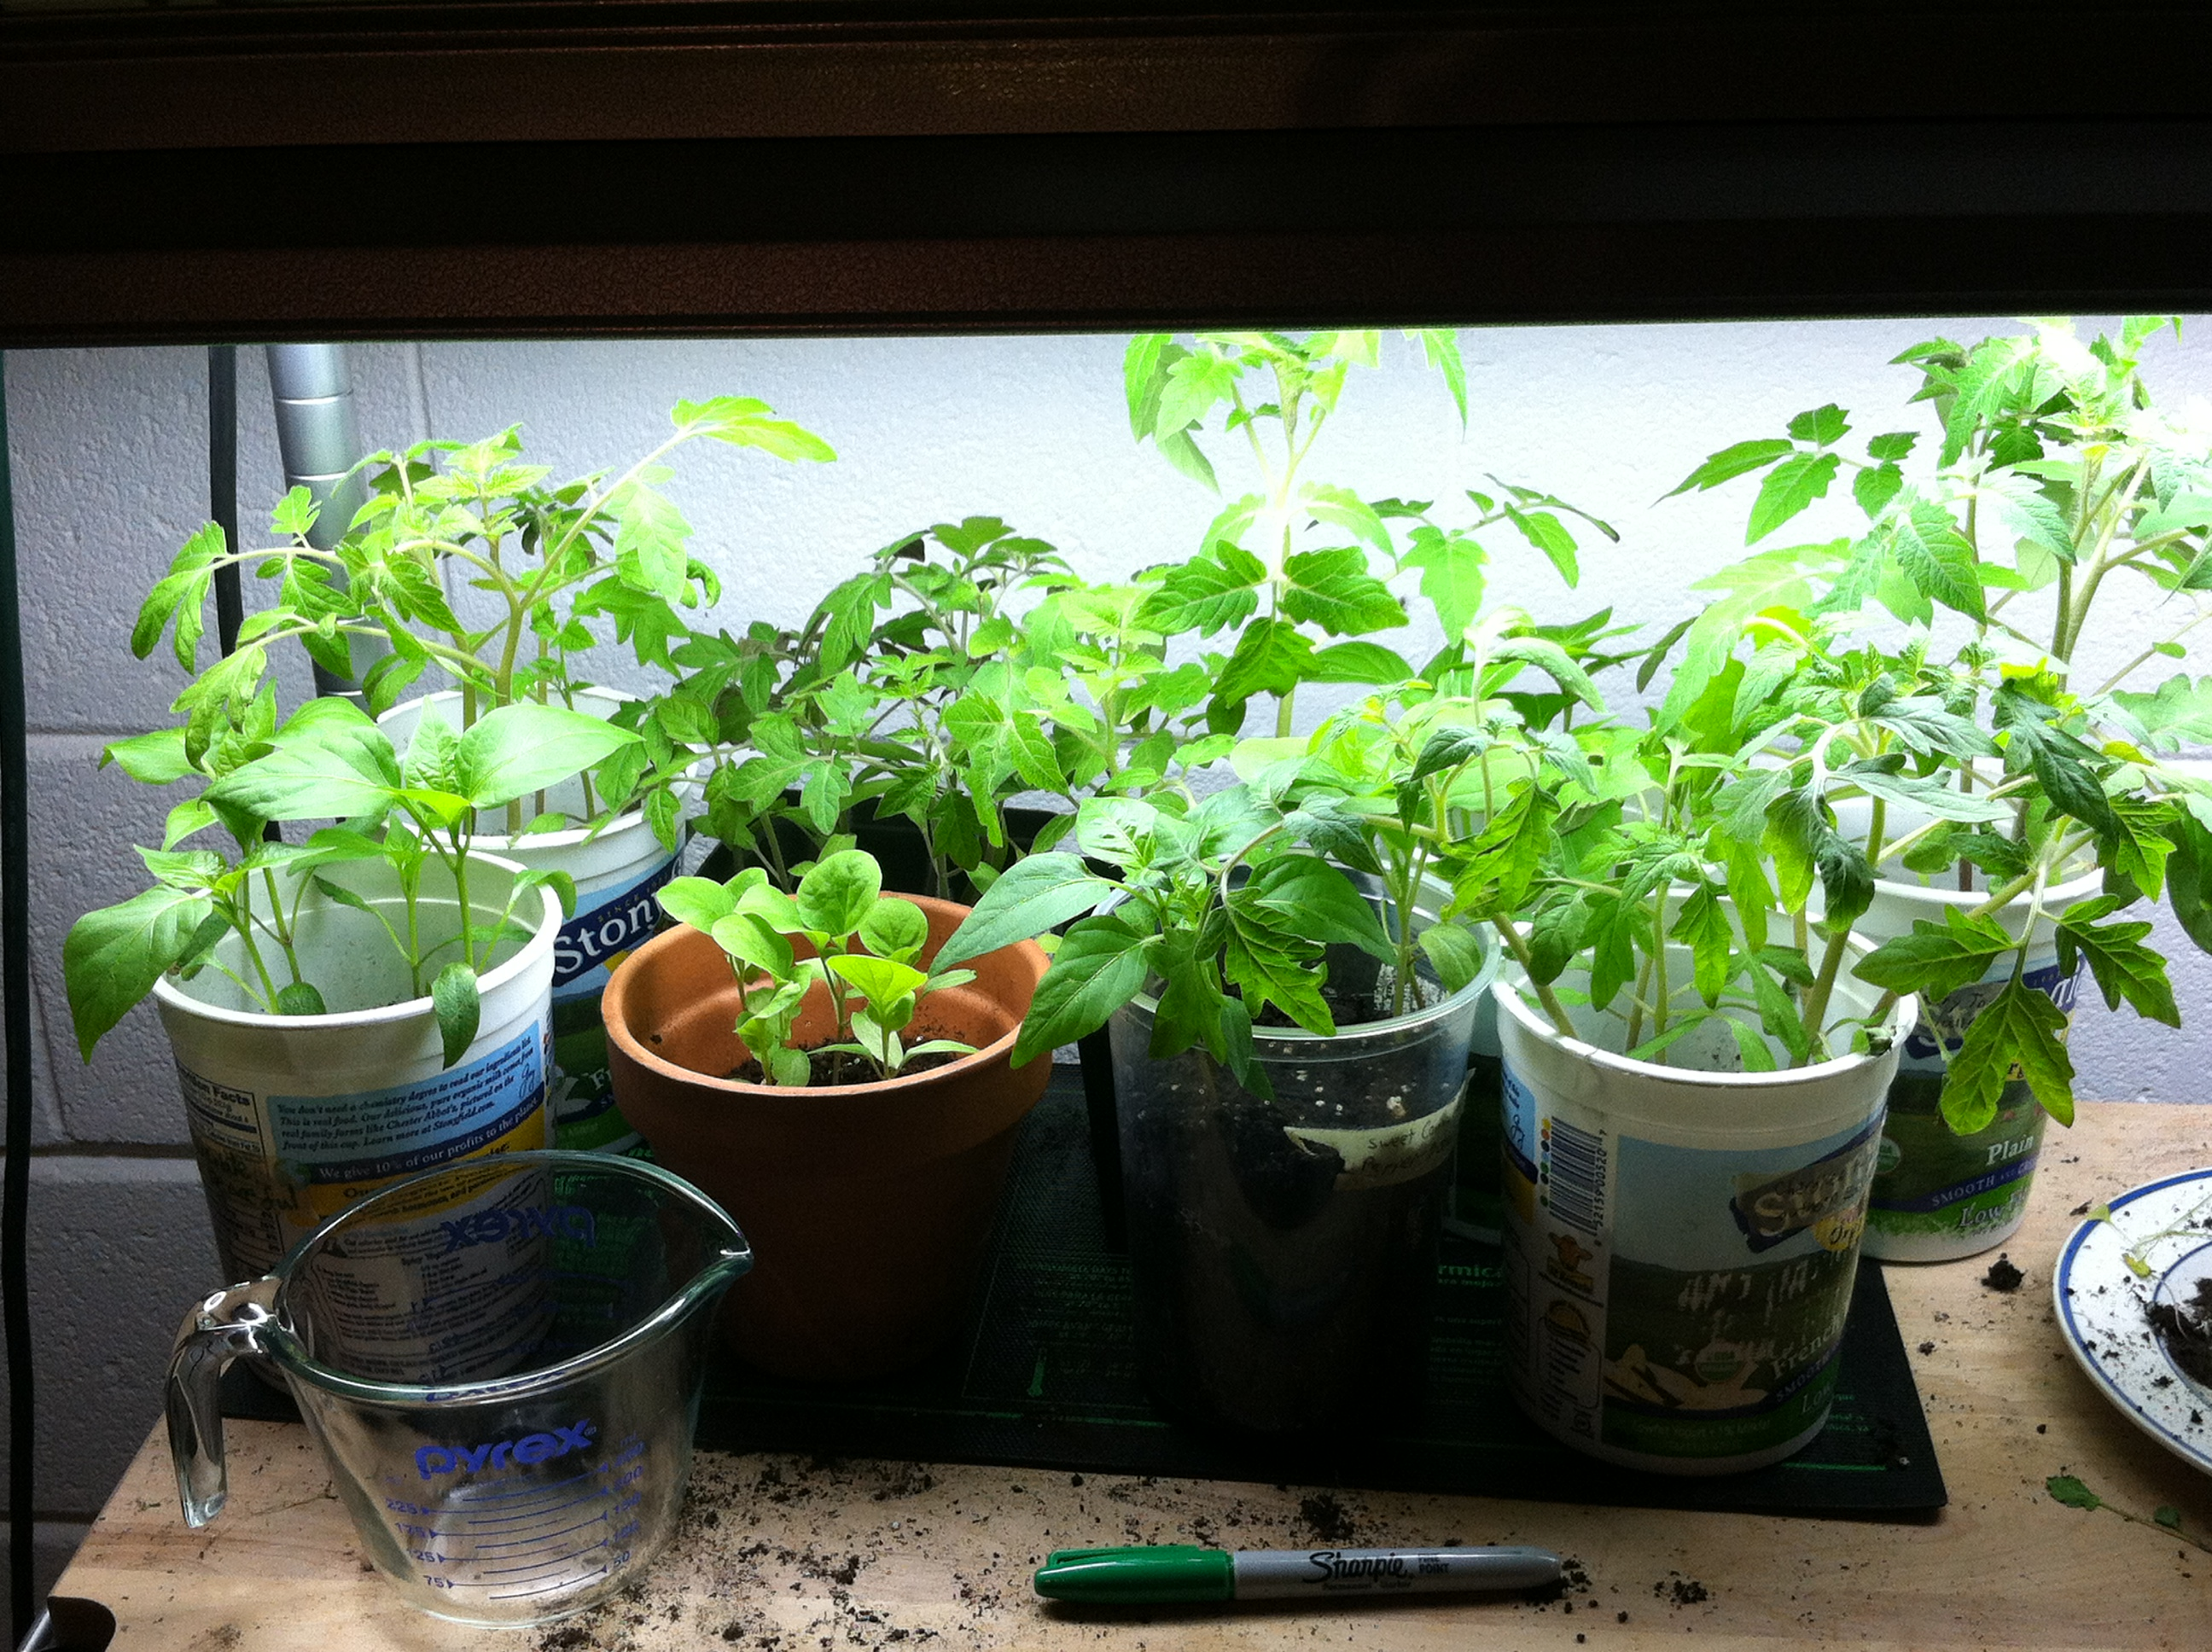 Growing in hope will bike for change or pie for Indoor vegetable gardening tips